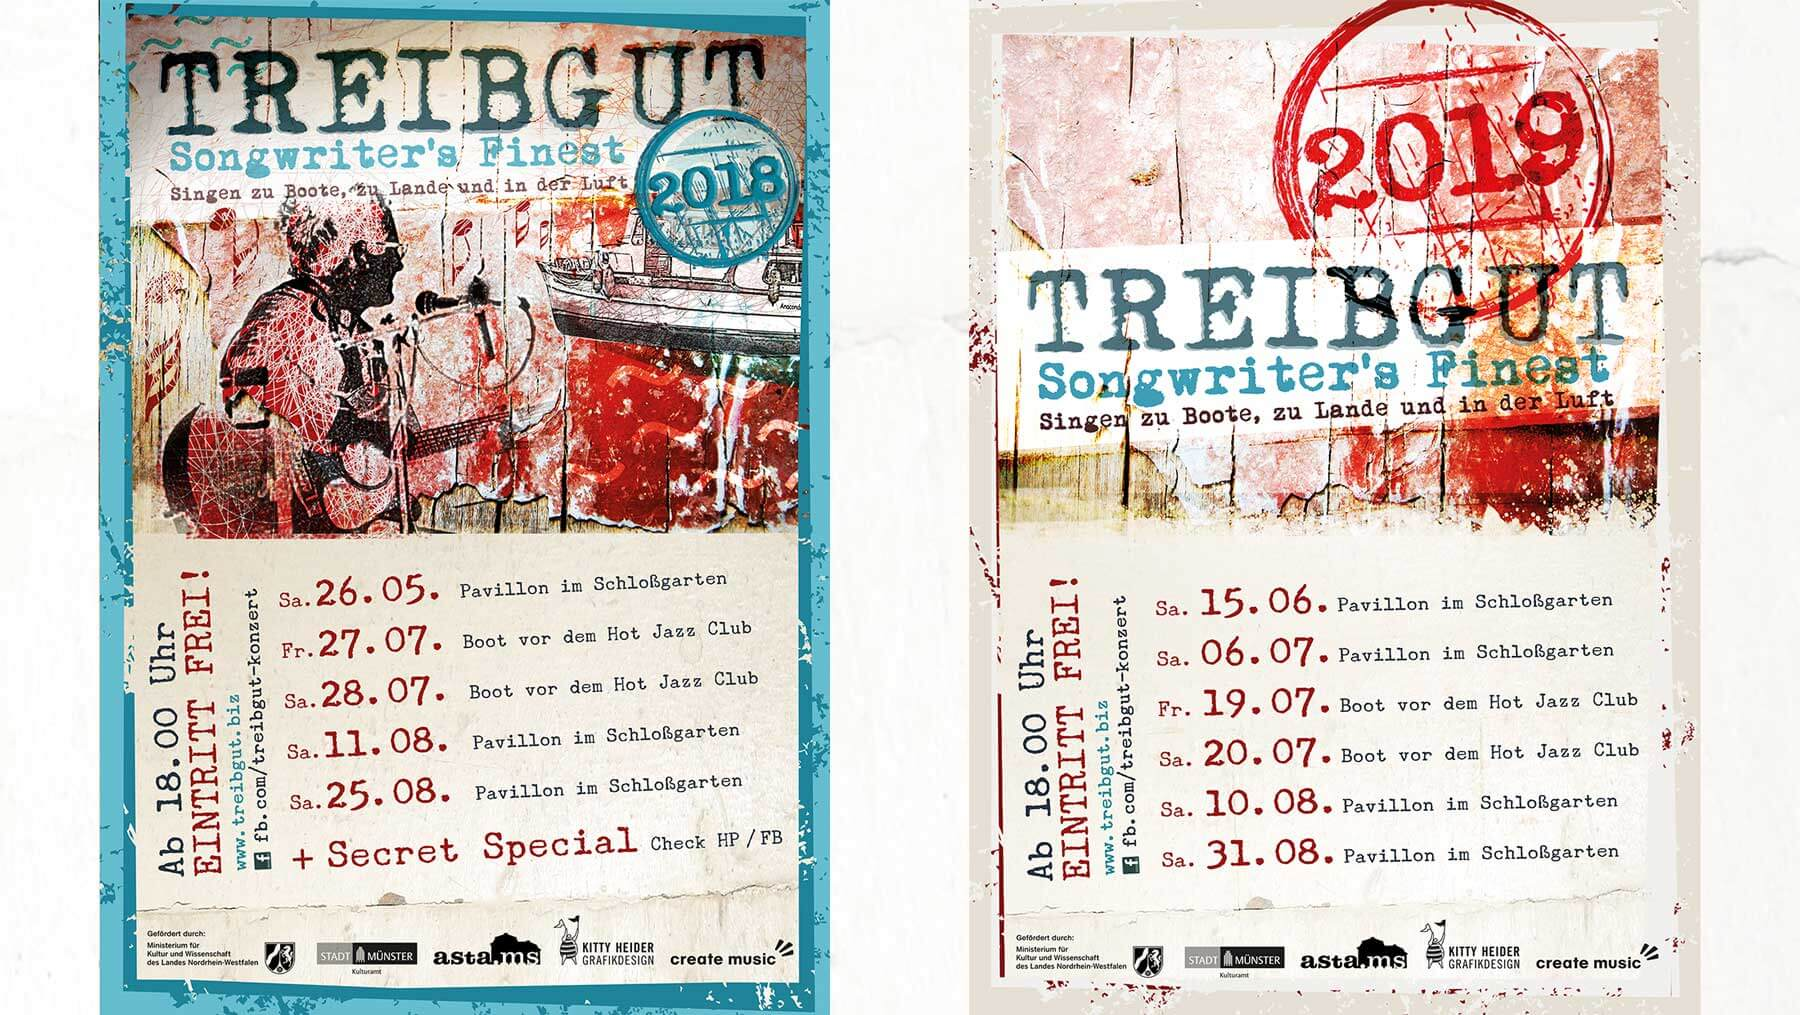 Treibgut-Songwriters-Finest-Flyer-Plakat-2018-2019